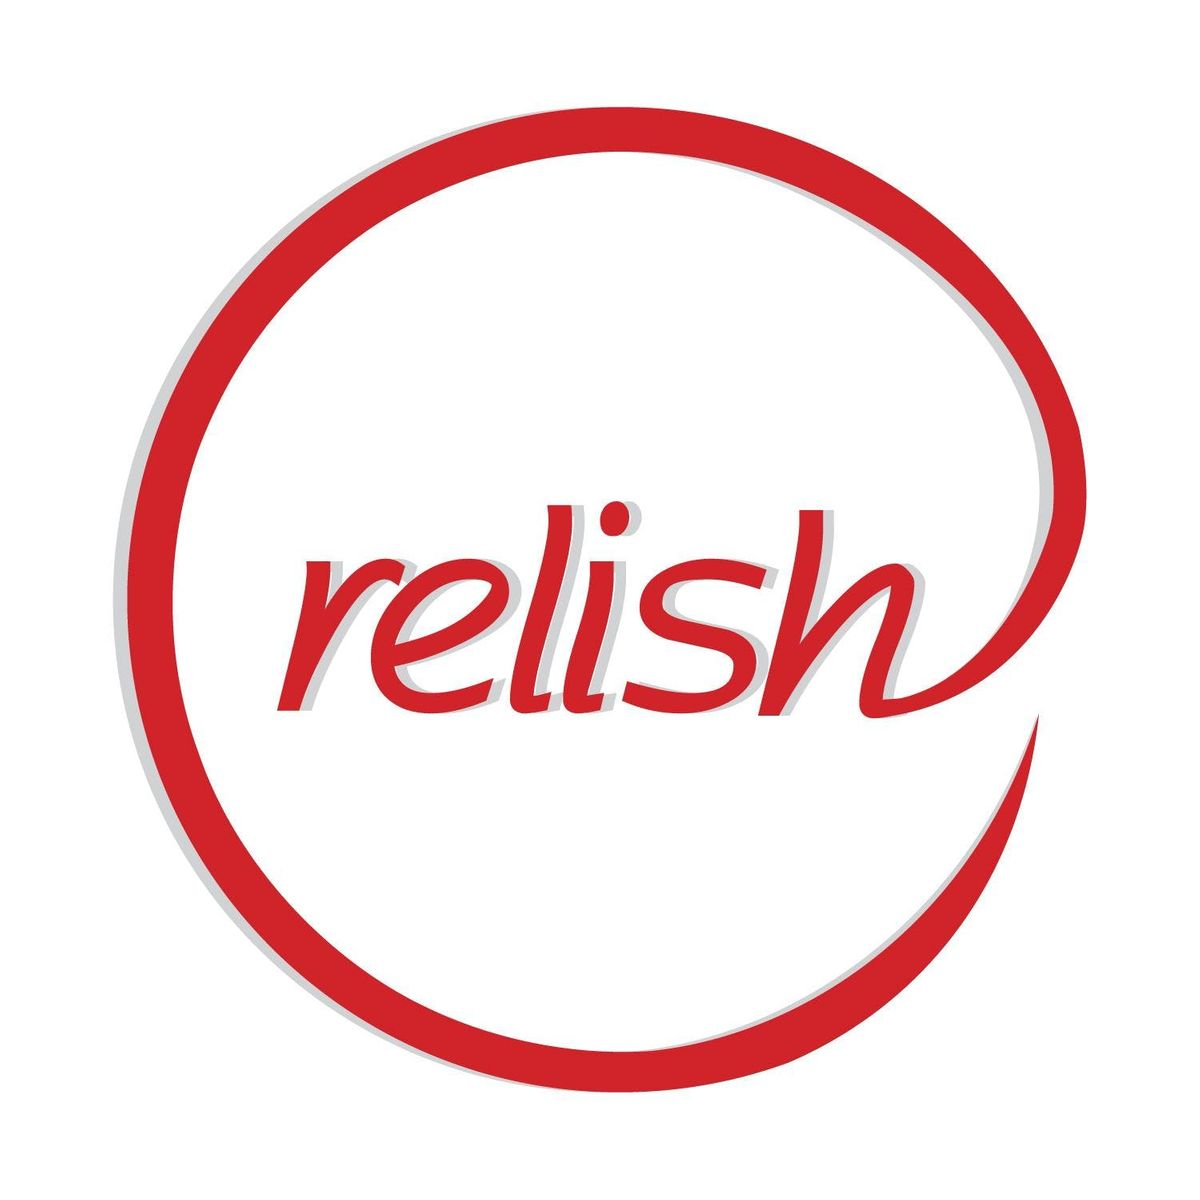 Saturday Singles Event Night  Speed Dating in Cincinnati  Brought to you by Relish Speed Dating